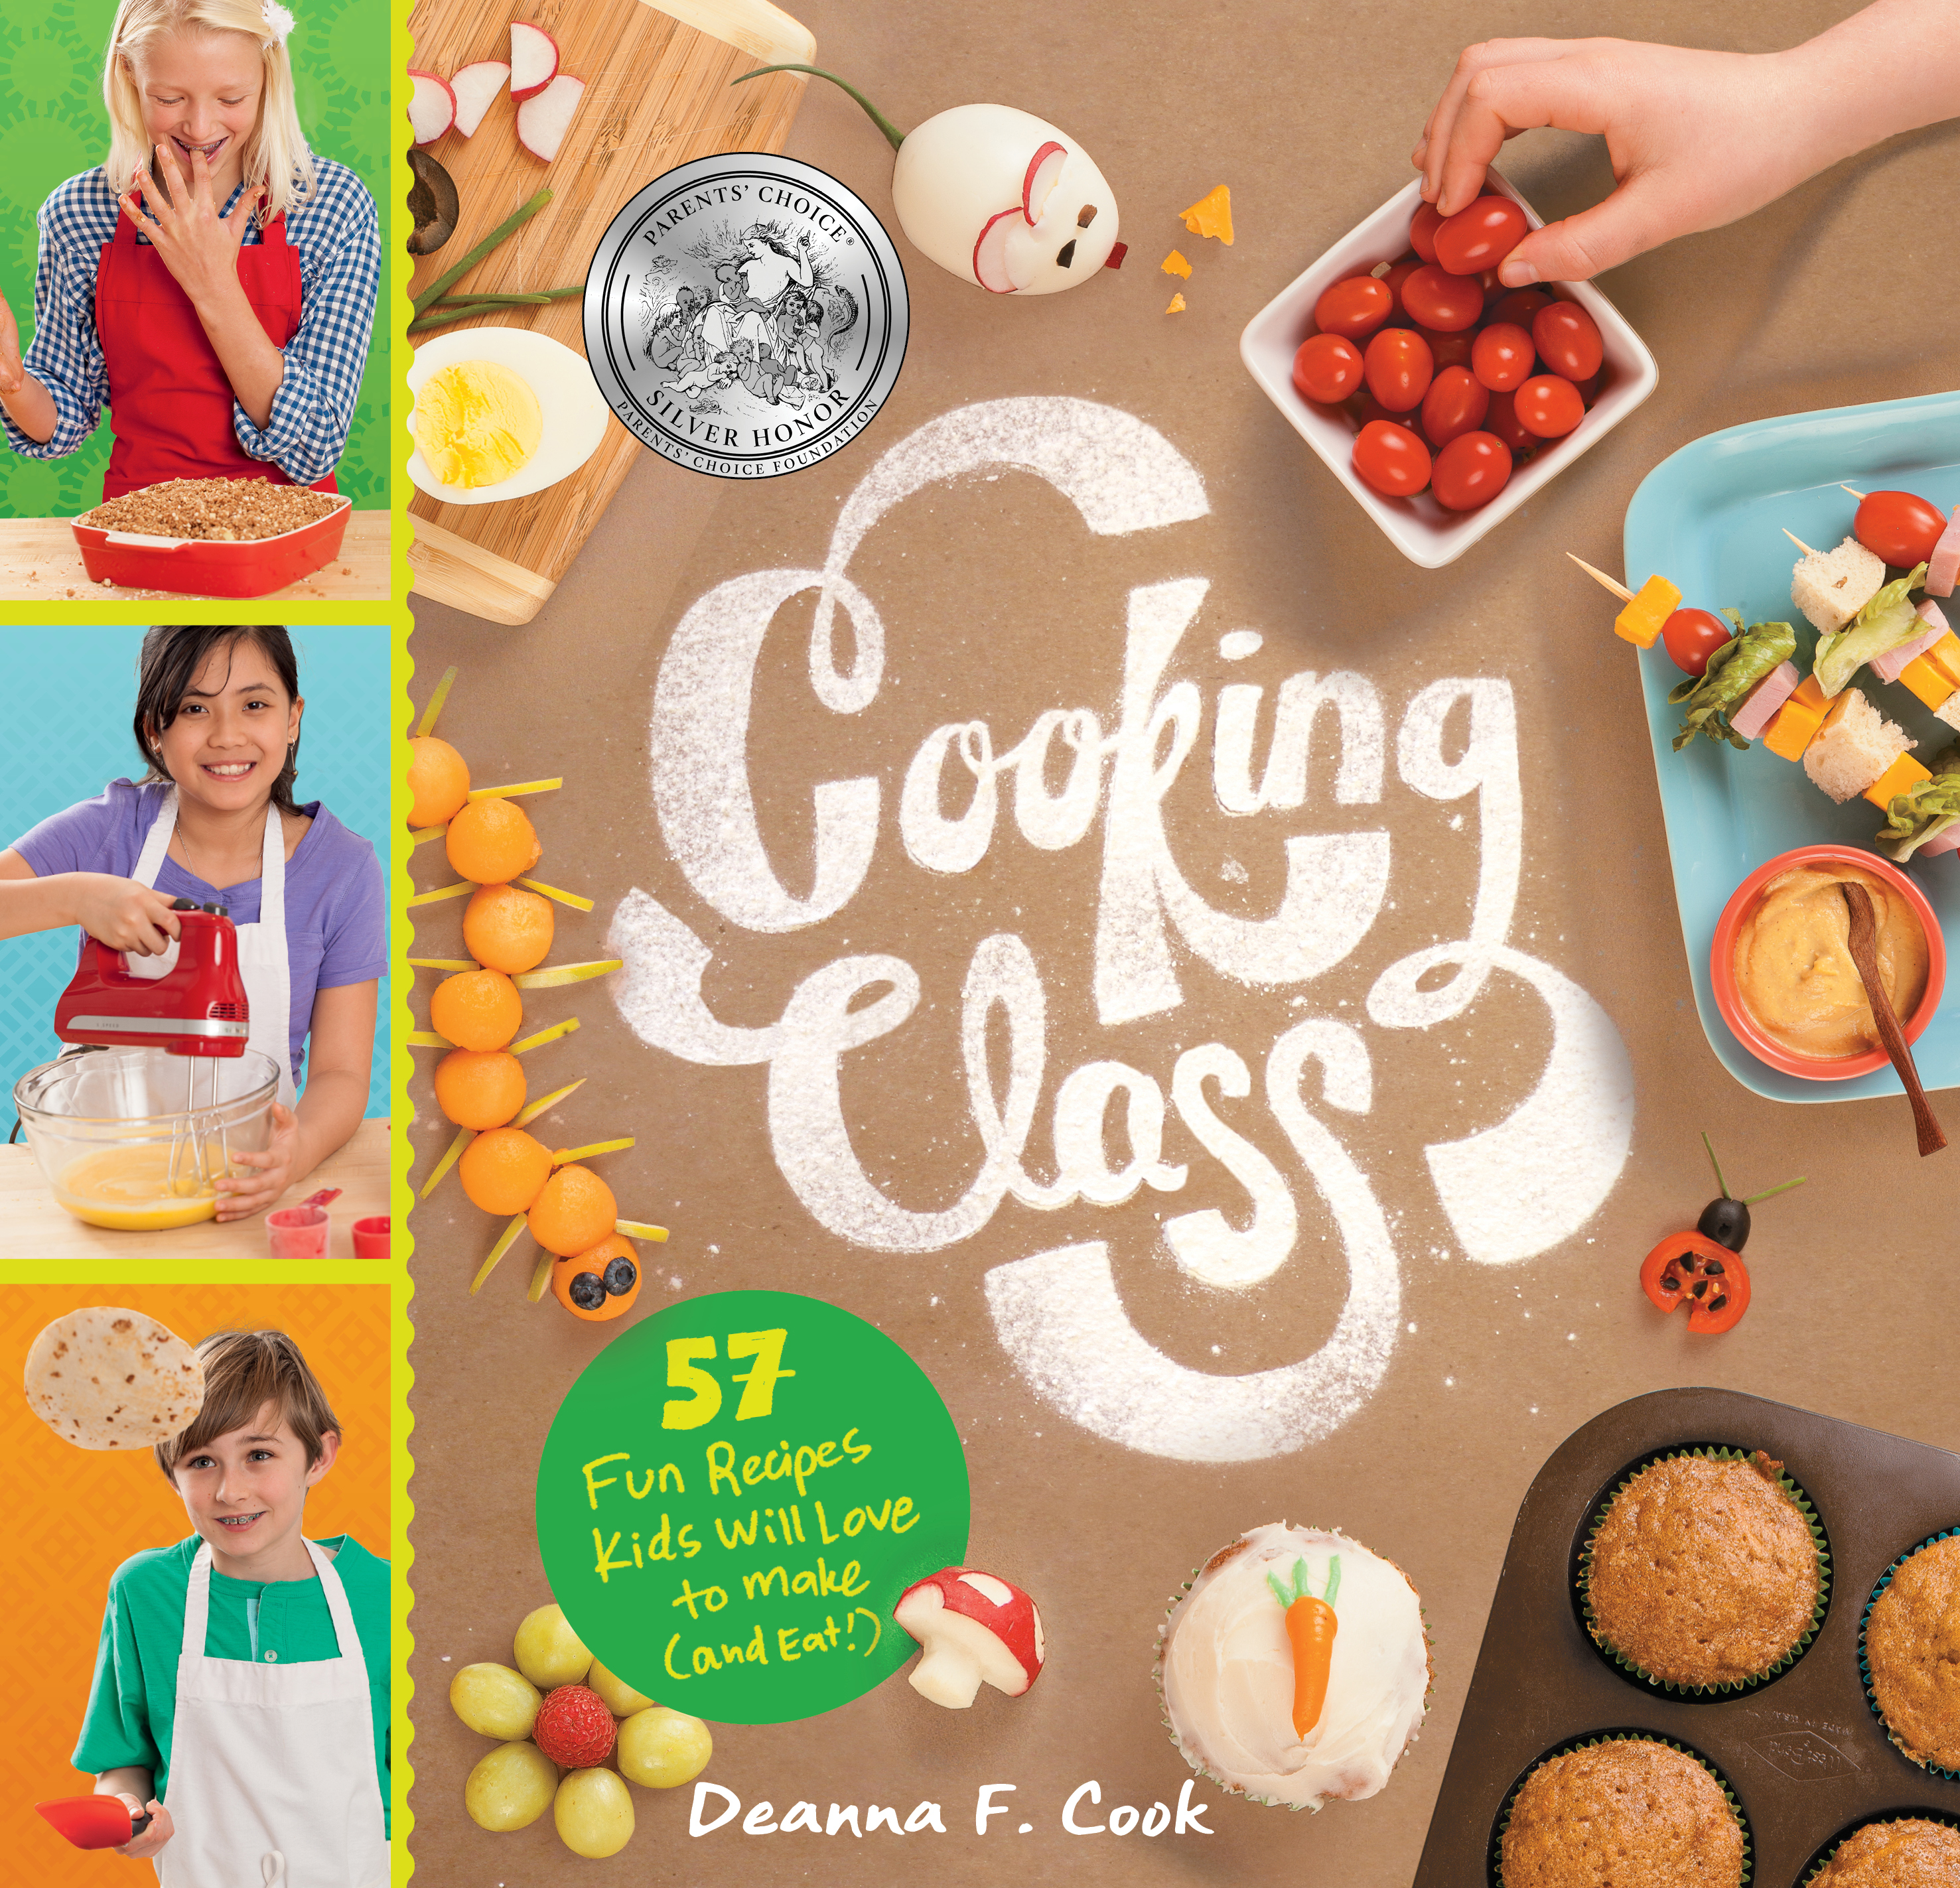 Cooking Class 57 Fun Recipes Kids Will Love to Make (and Eat!) - Deanna F. Cook